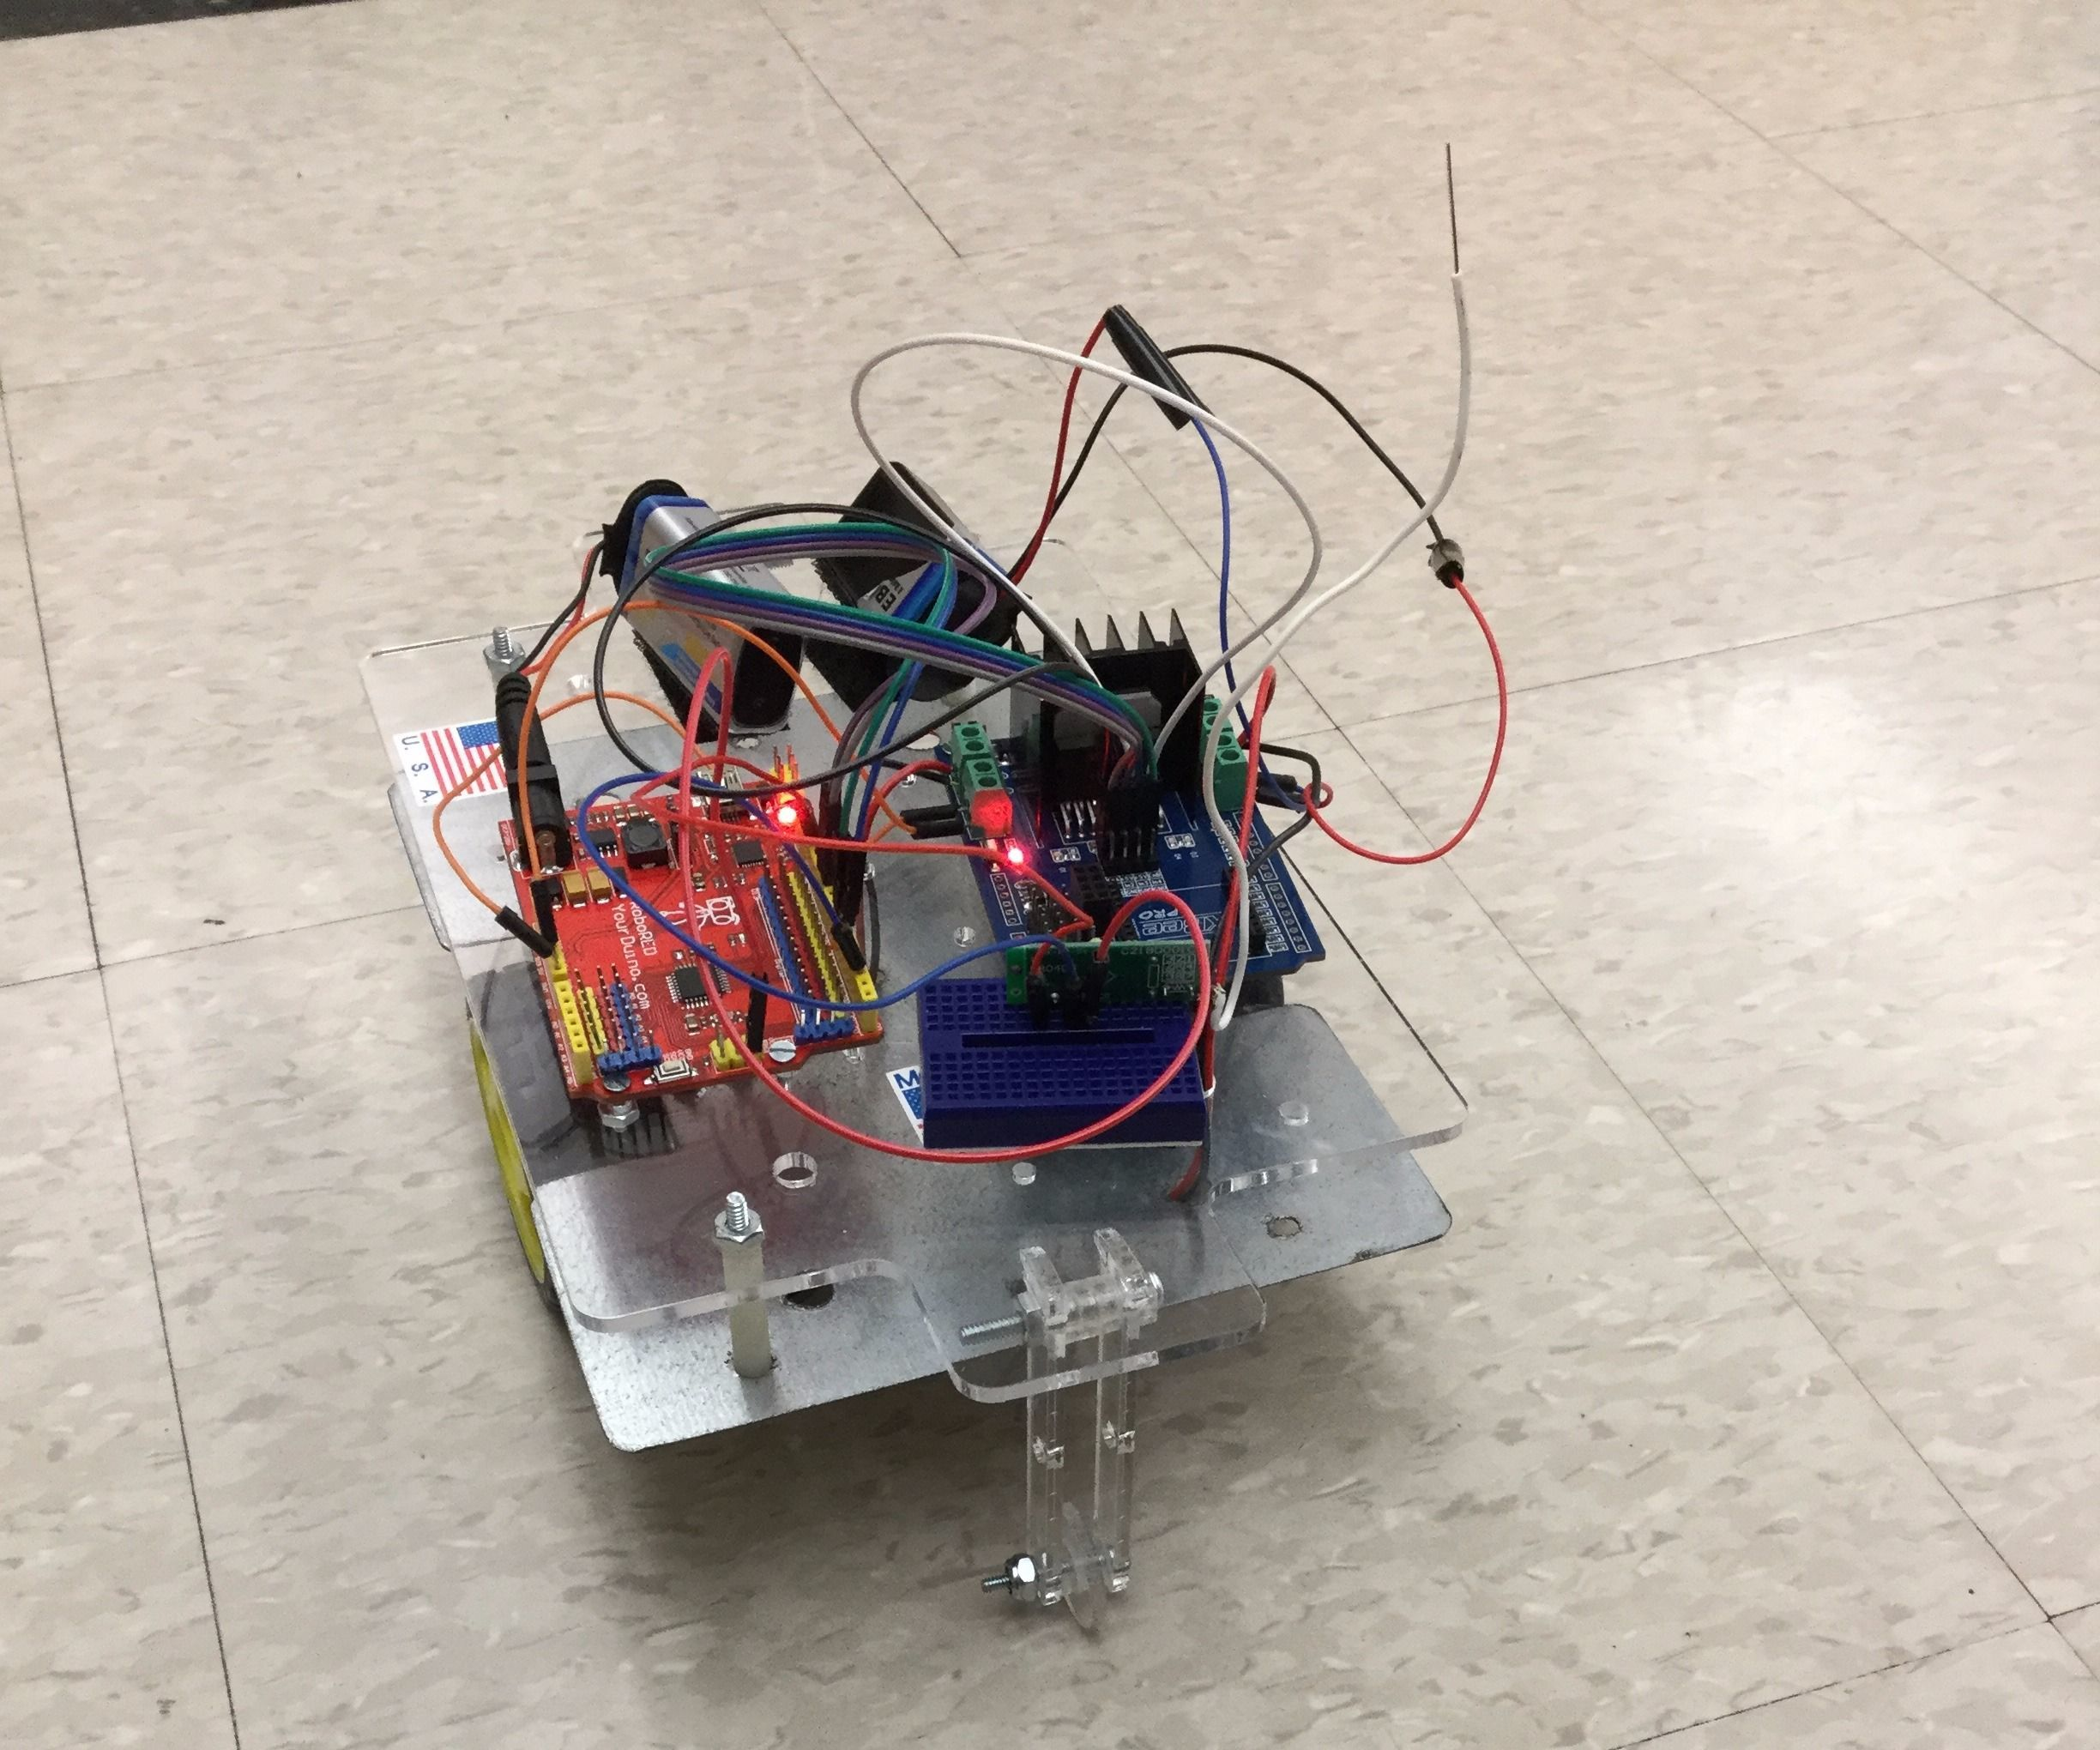 Building an RC Car Using a 433 MHz RF Transmitter and